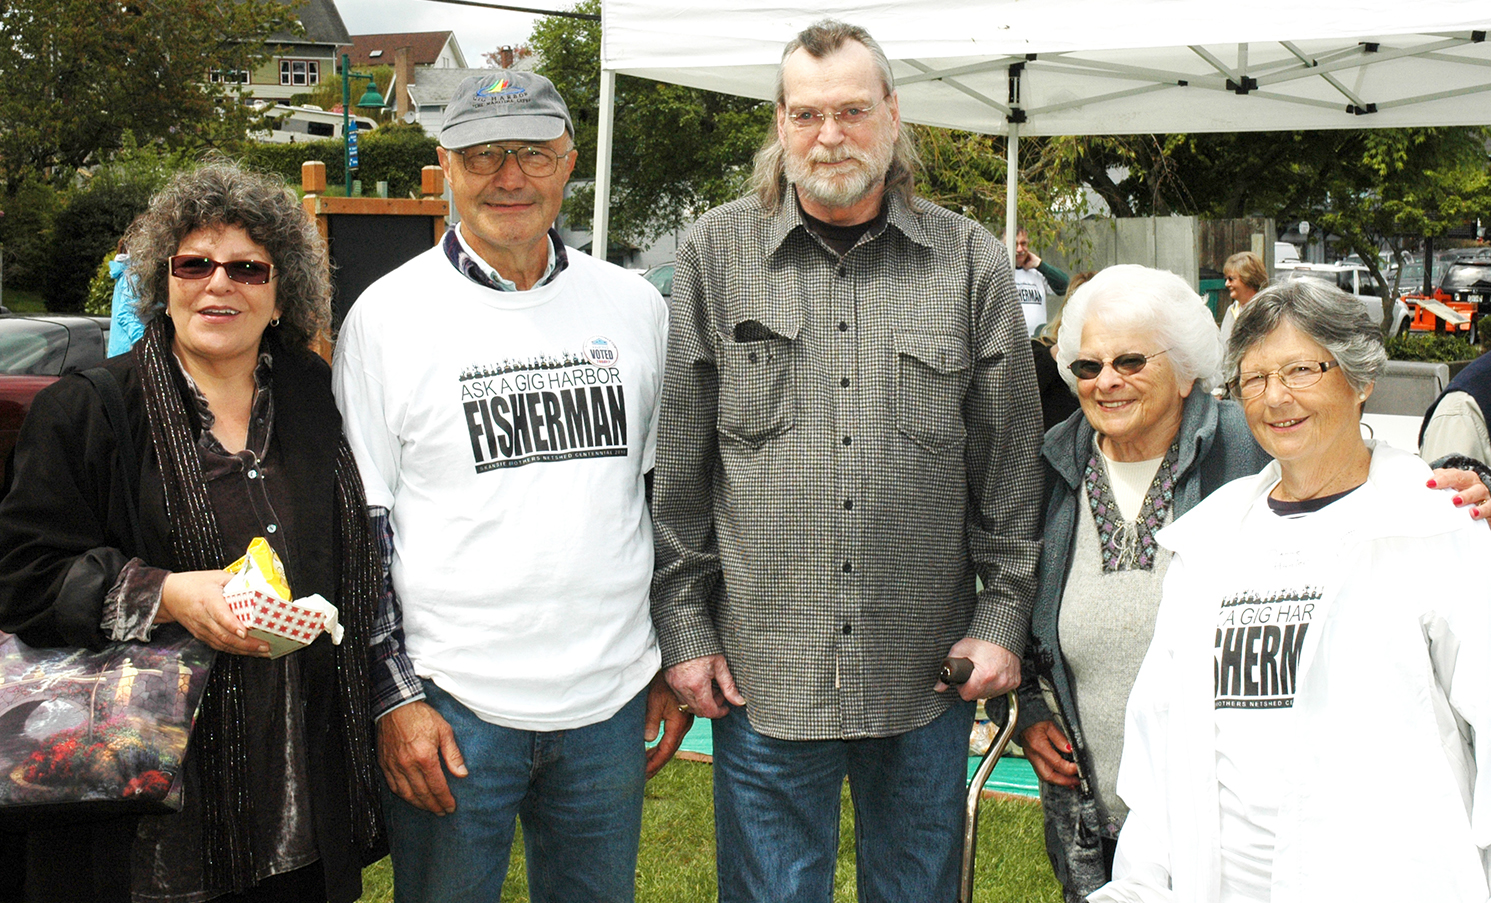 Mike Skansie's wife, Lydia, Mayor Chuck Hunter, Mike Skansie (son of Peter), Gretchen Wilbert, and Dianne Hunter during the 2010 100-year celebration at the Skansie Netshed.